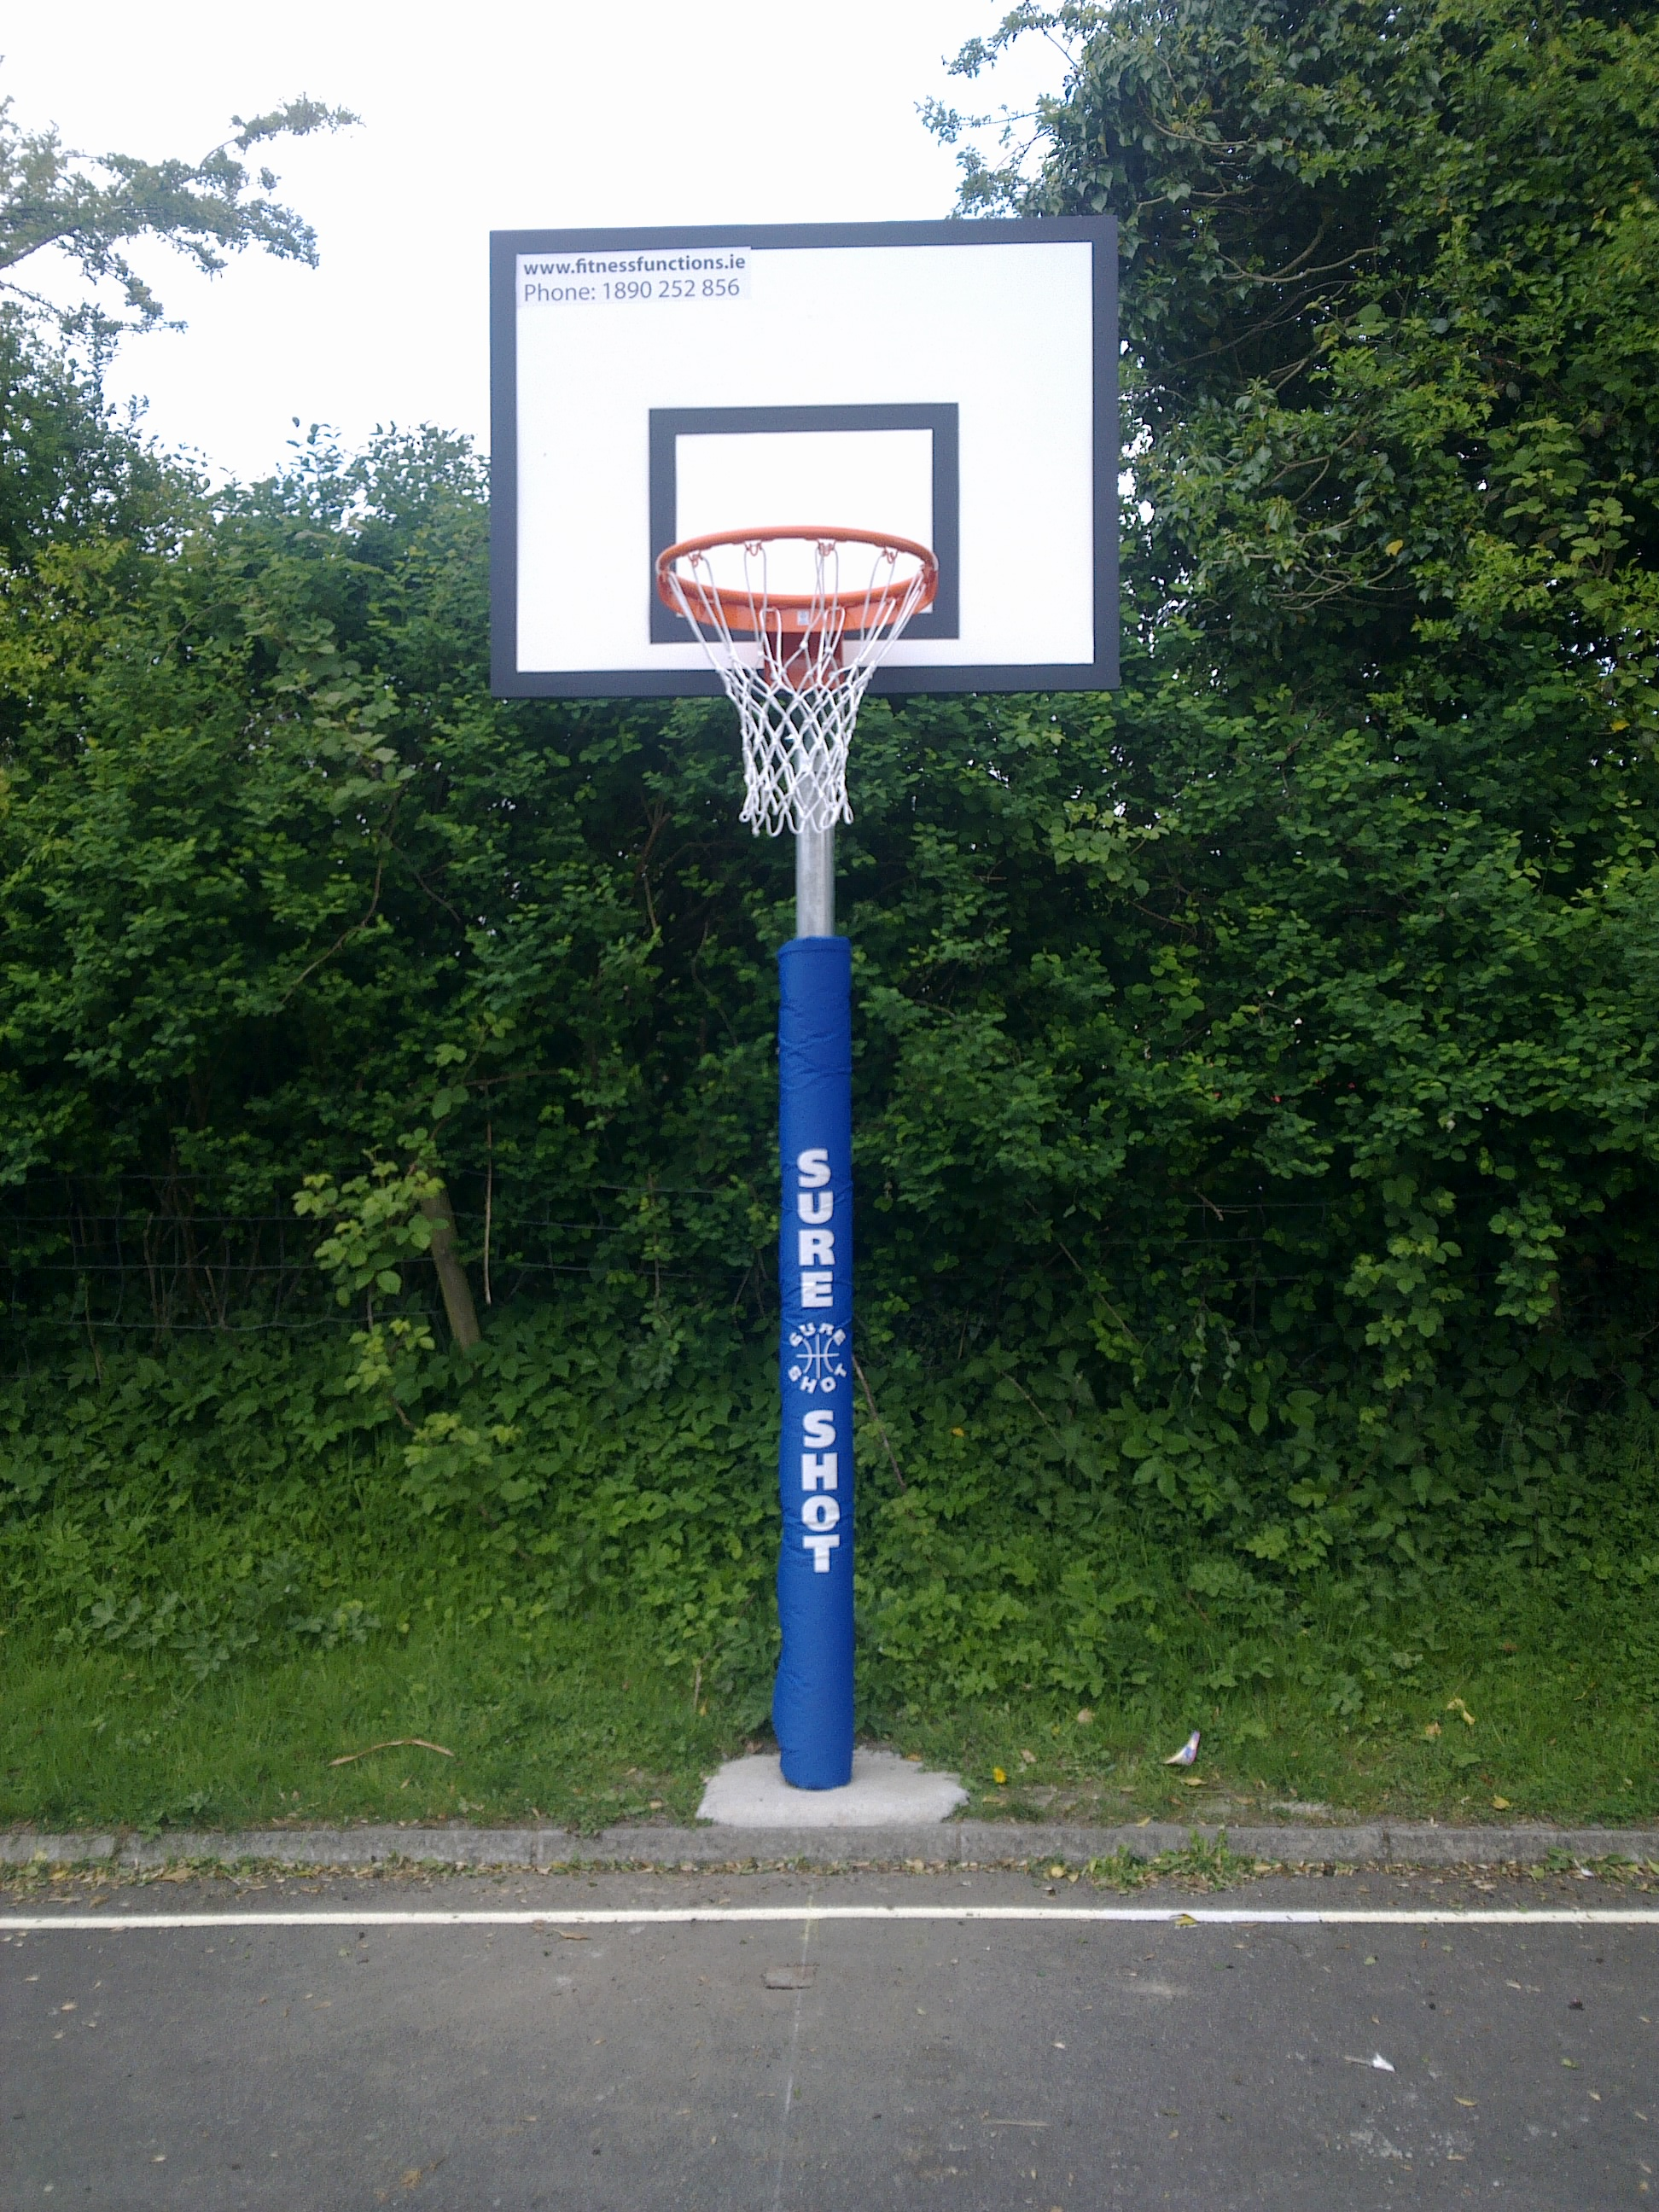 outdoor basketball goals fitness functions